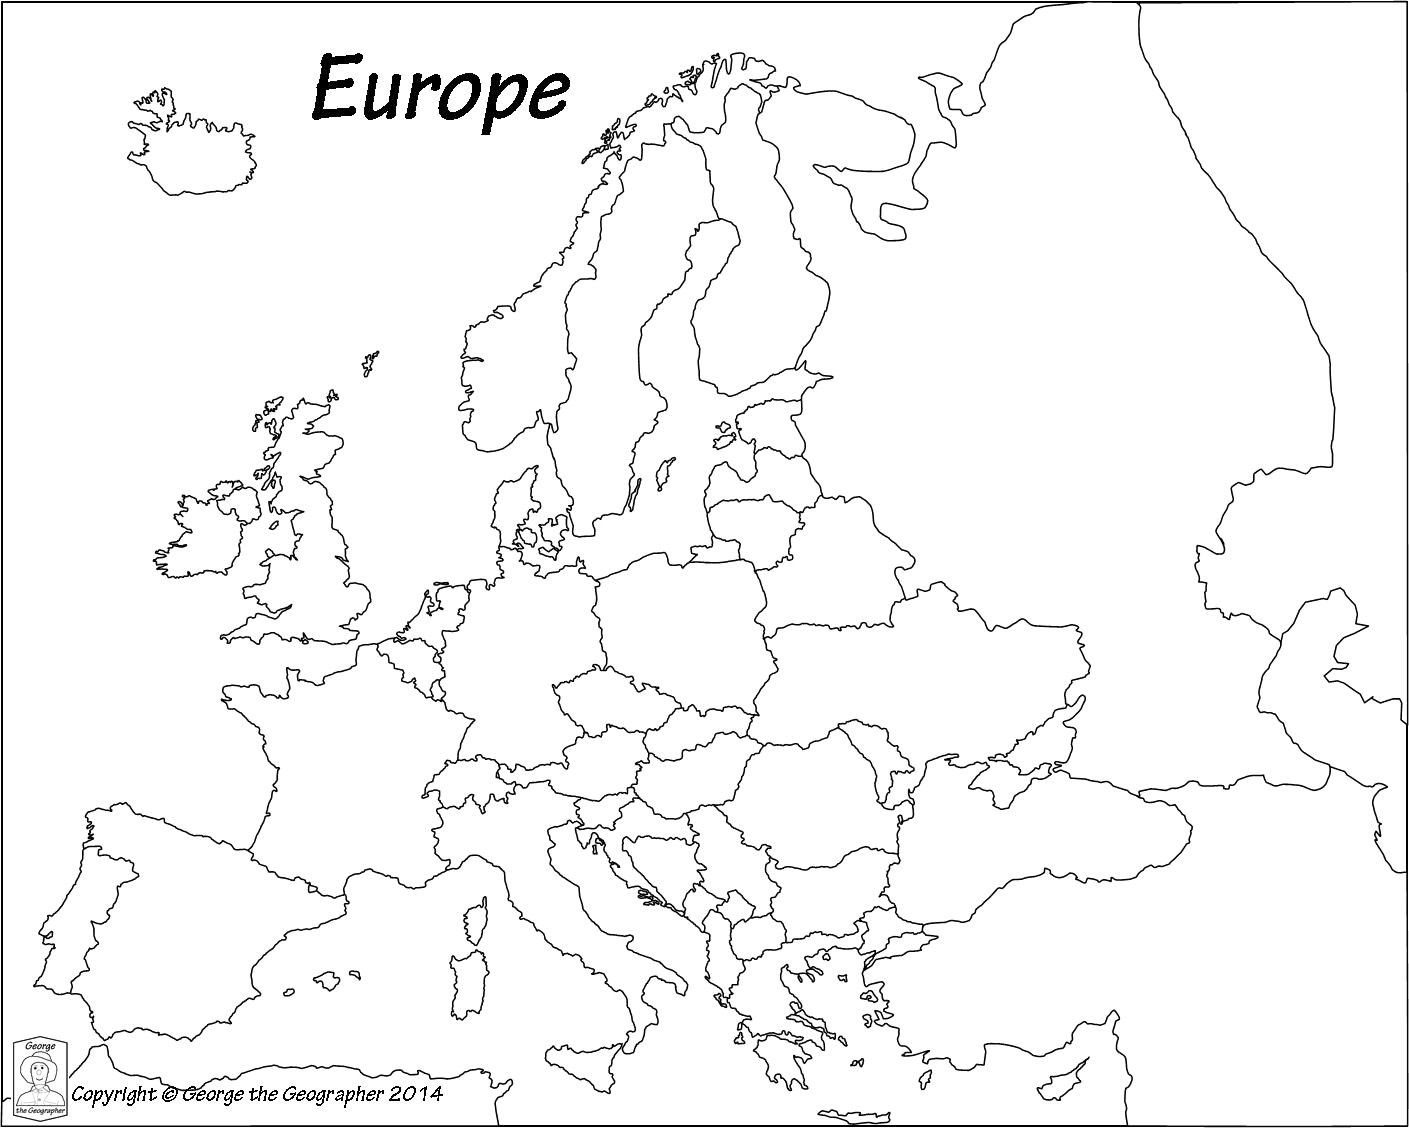 coloring outline map of europe with country names europe unlabeled map telene me and of black white europe map names country europe coloring with of outline